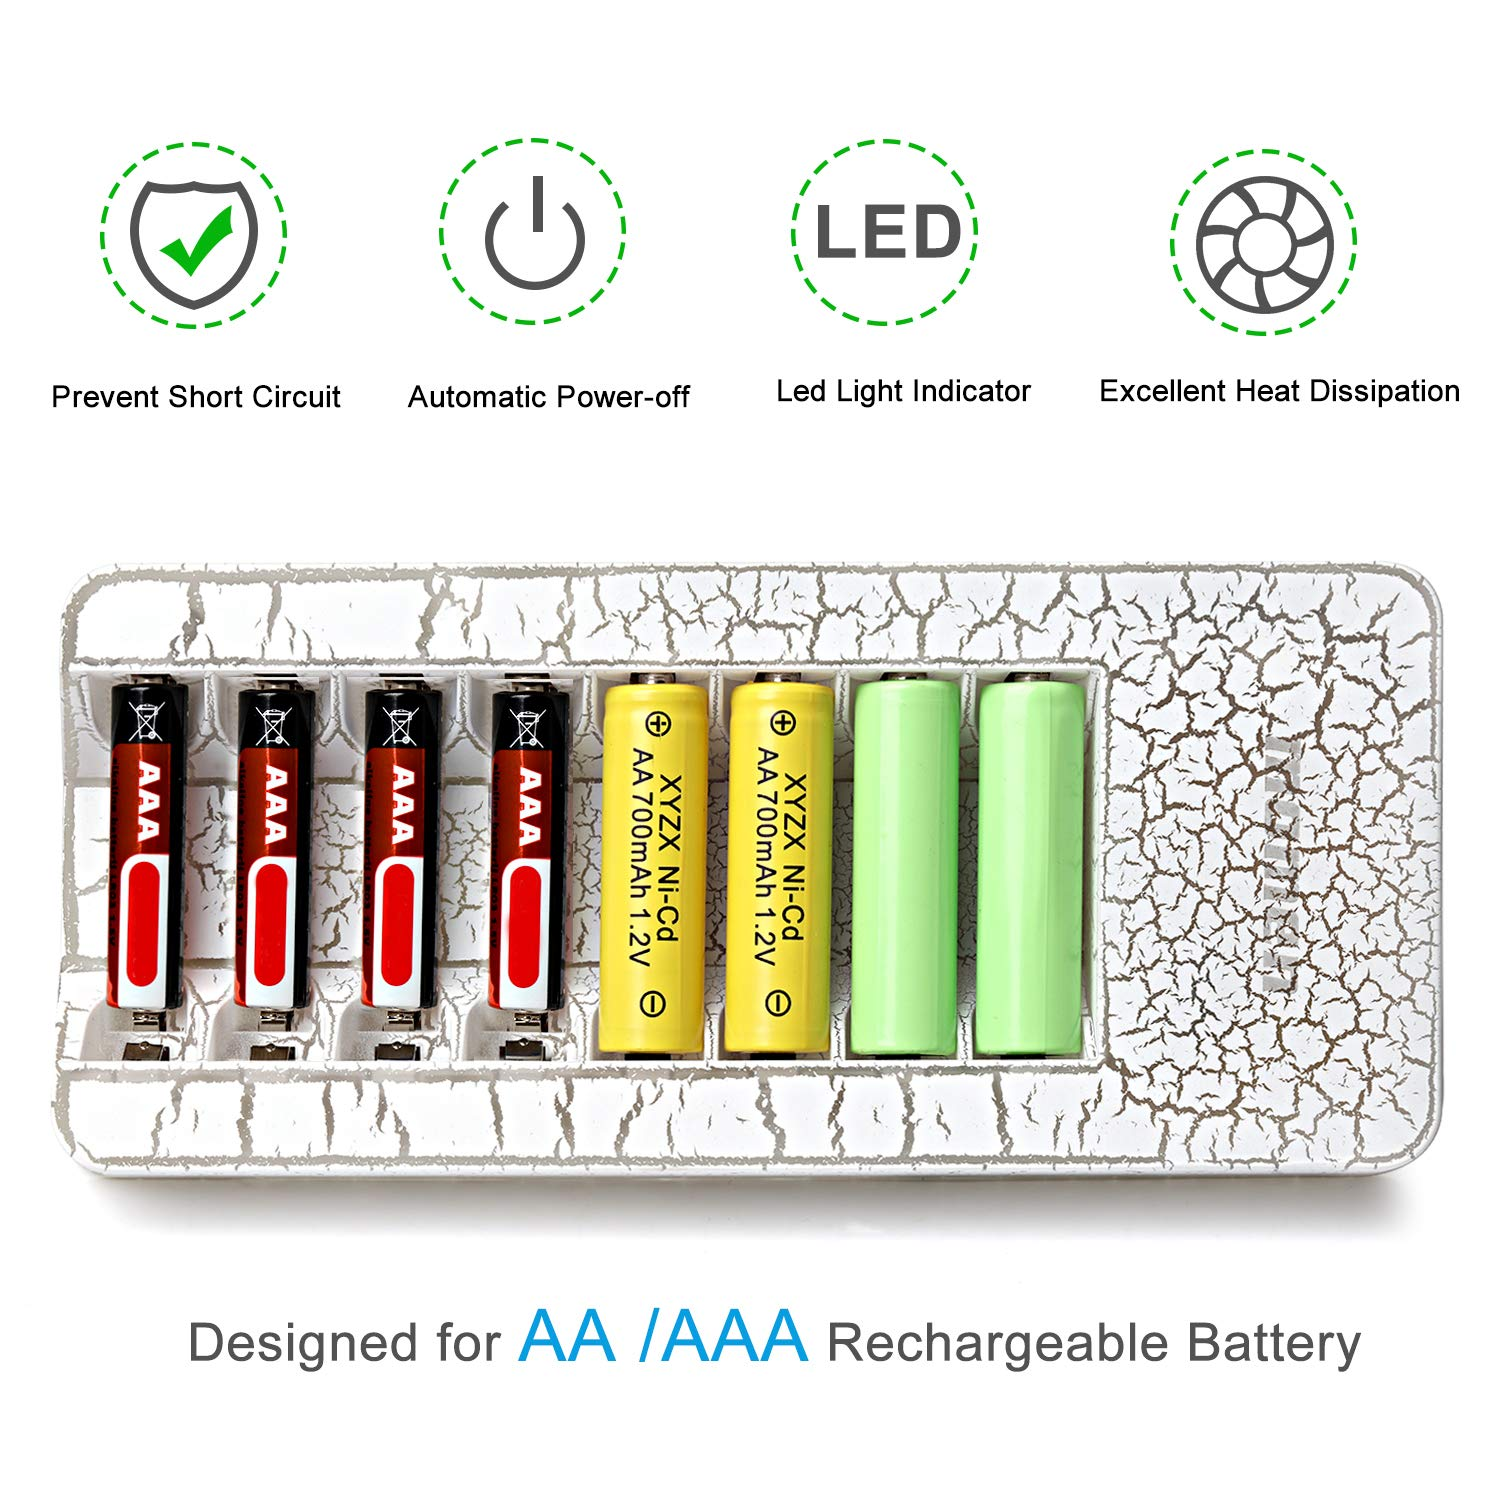 AAA Battery Charger,Momen 8 Bay AA Battery Charger with LED Light Indication for Rechargable AA/AAA Battery